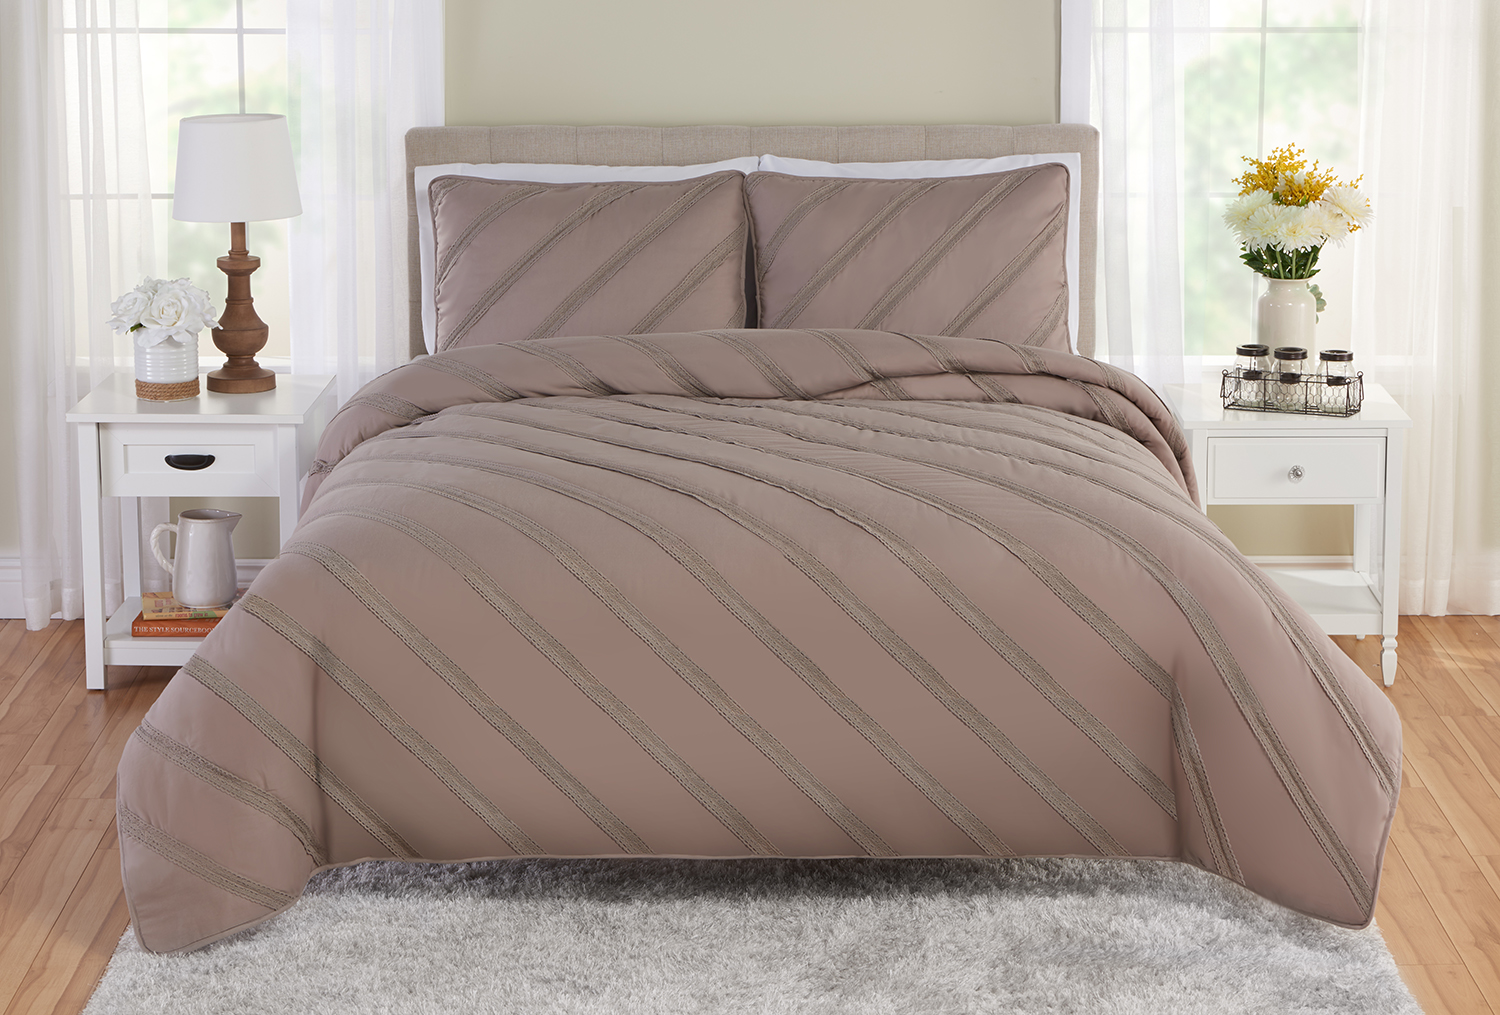 Better Homes and Gardens Textured Diagonal Stripe Quilt & Sham Set by Beco Industries